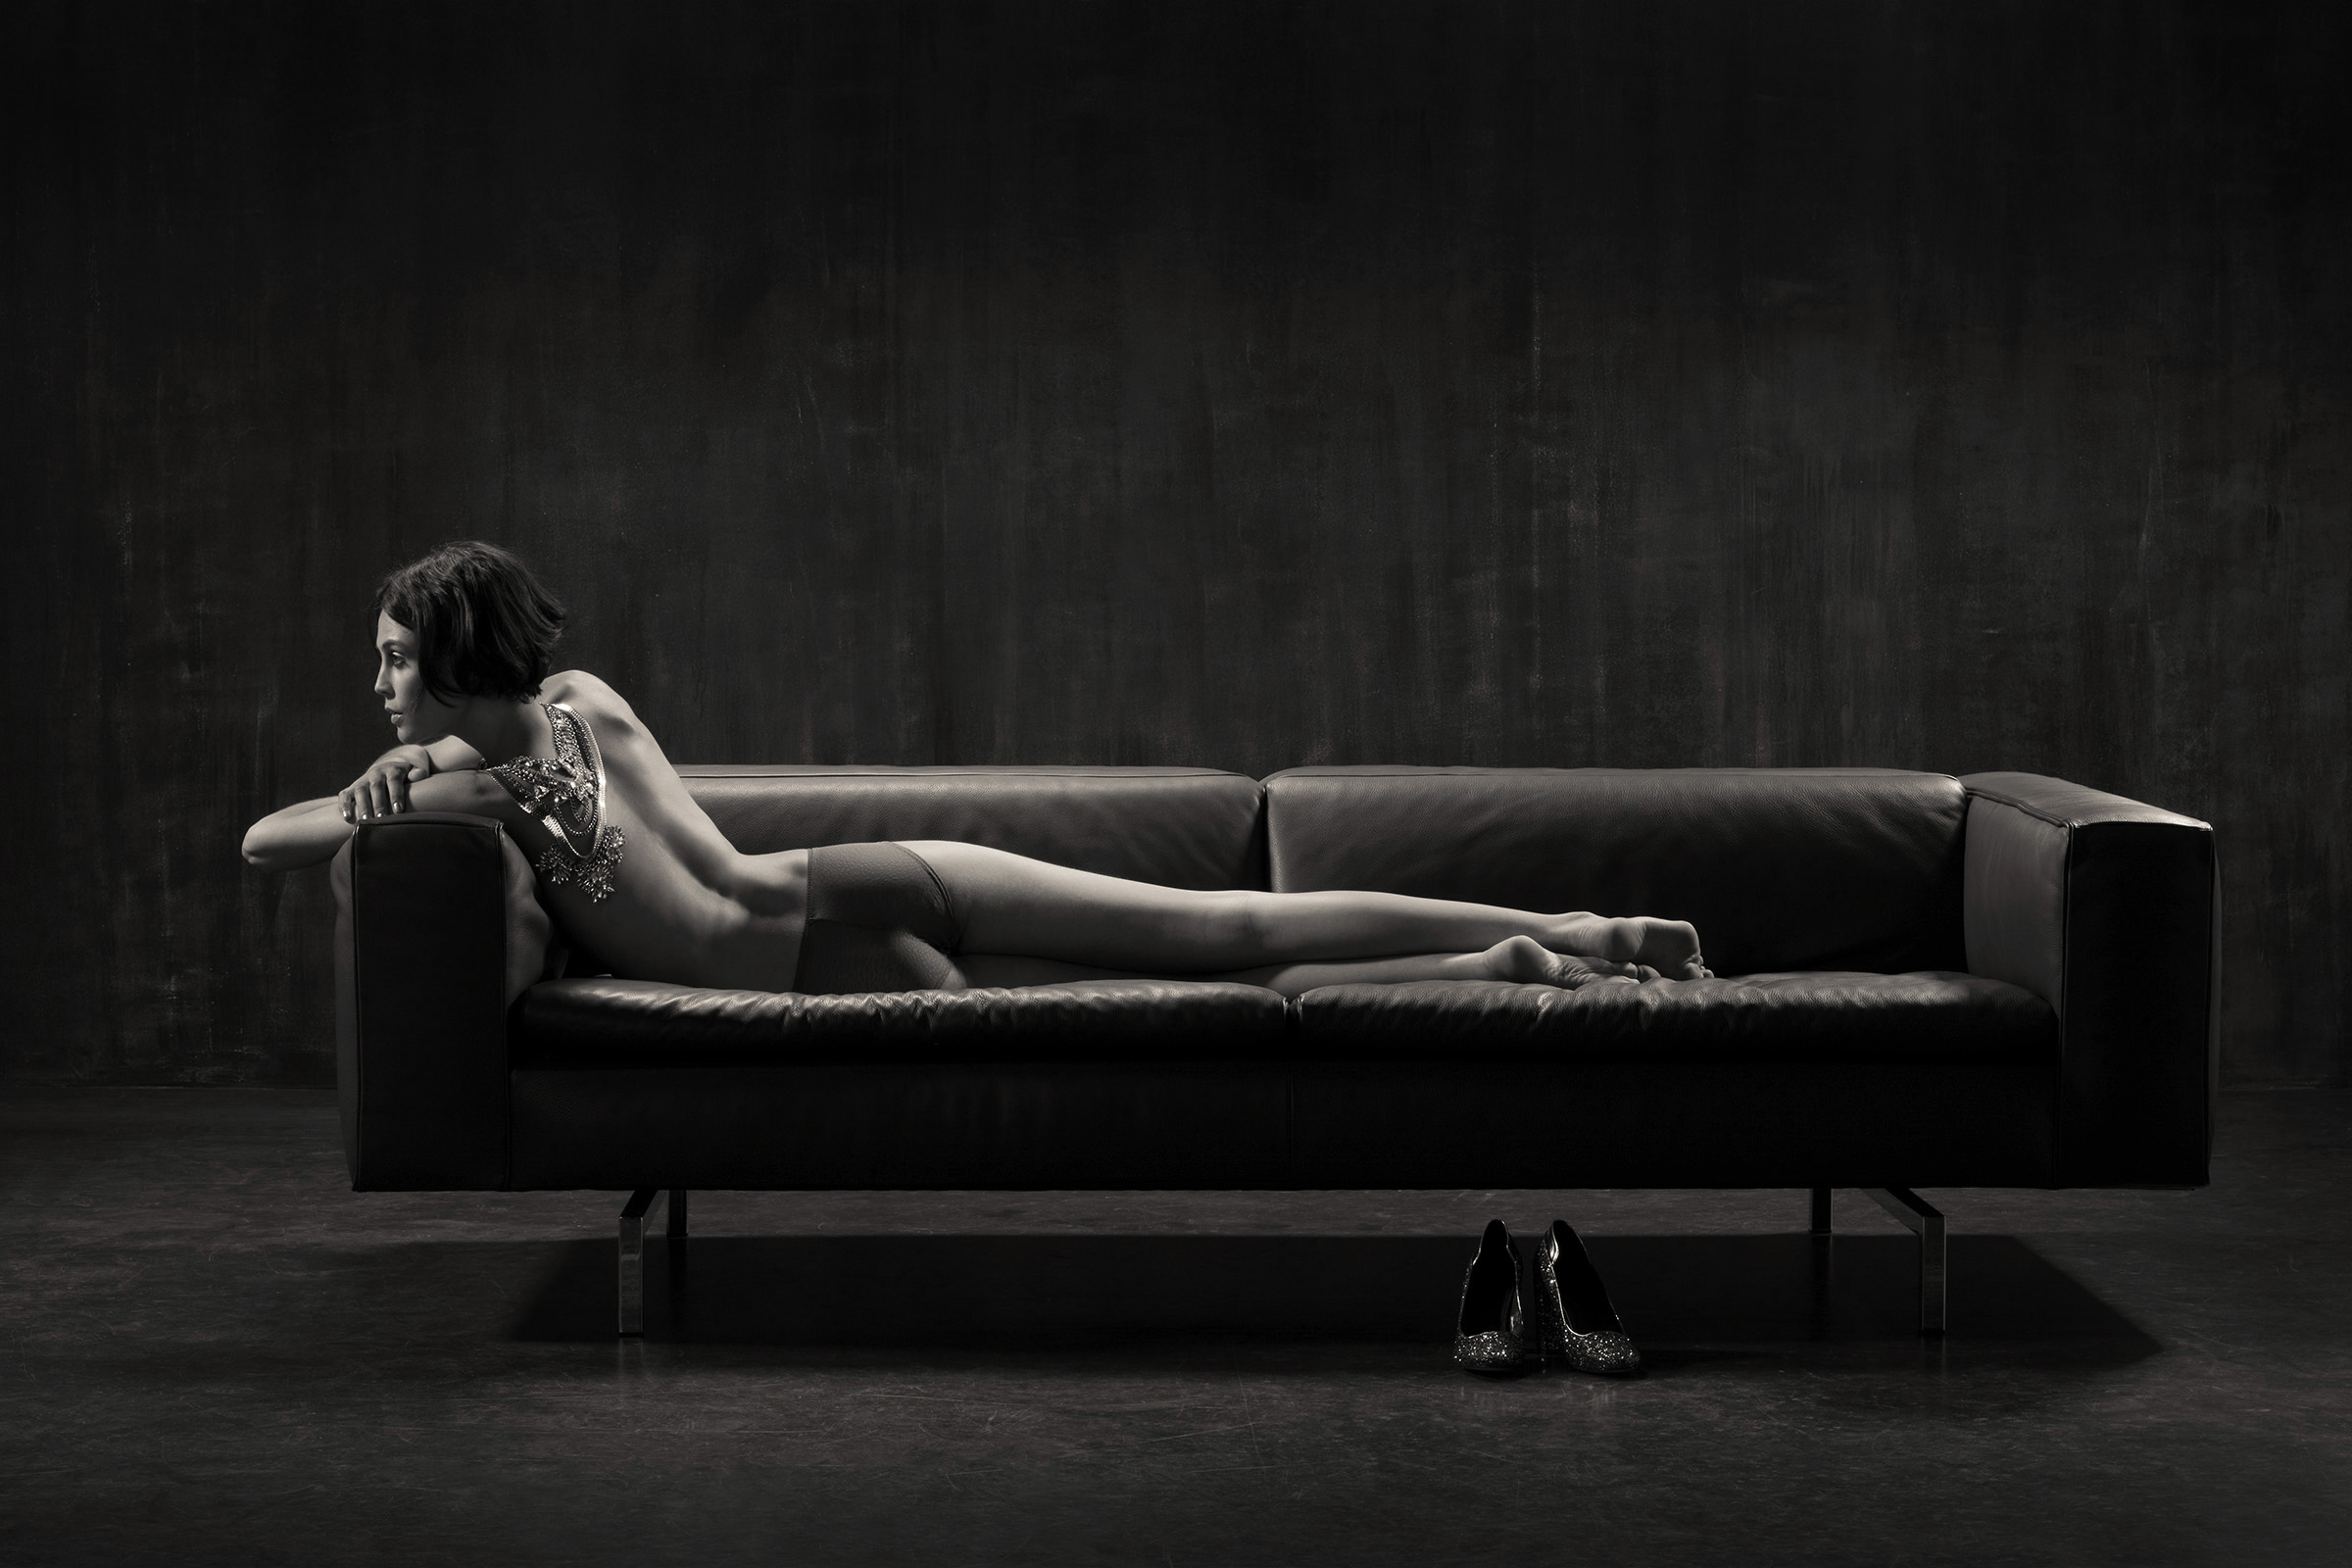 Nude model is stretched out on a leather seat. Black and white. Campaign image for seat manufacturer Stolz